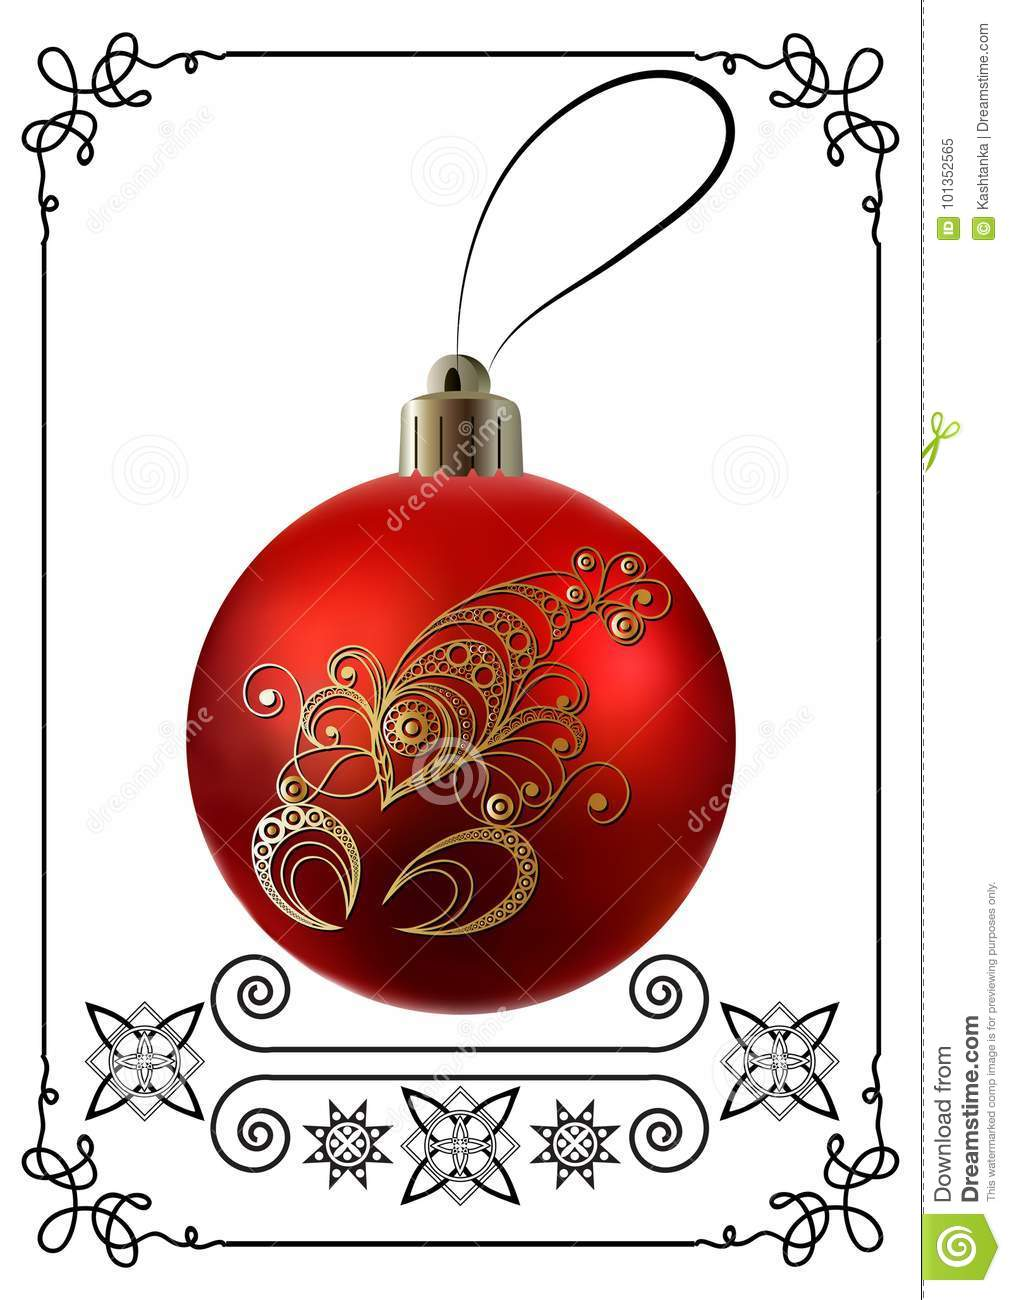 Graphic illustration with Christmas decoration 26